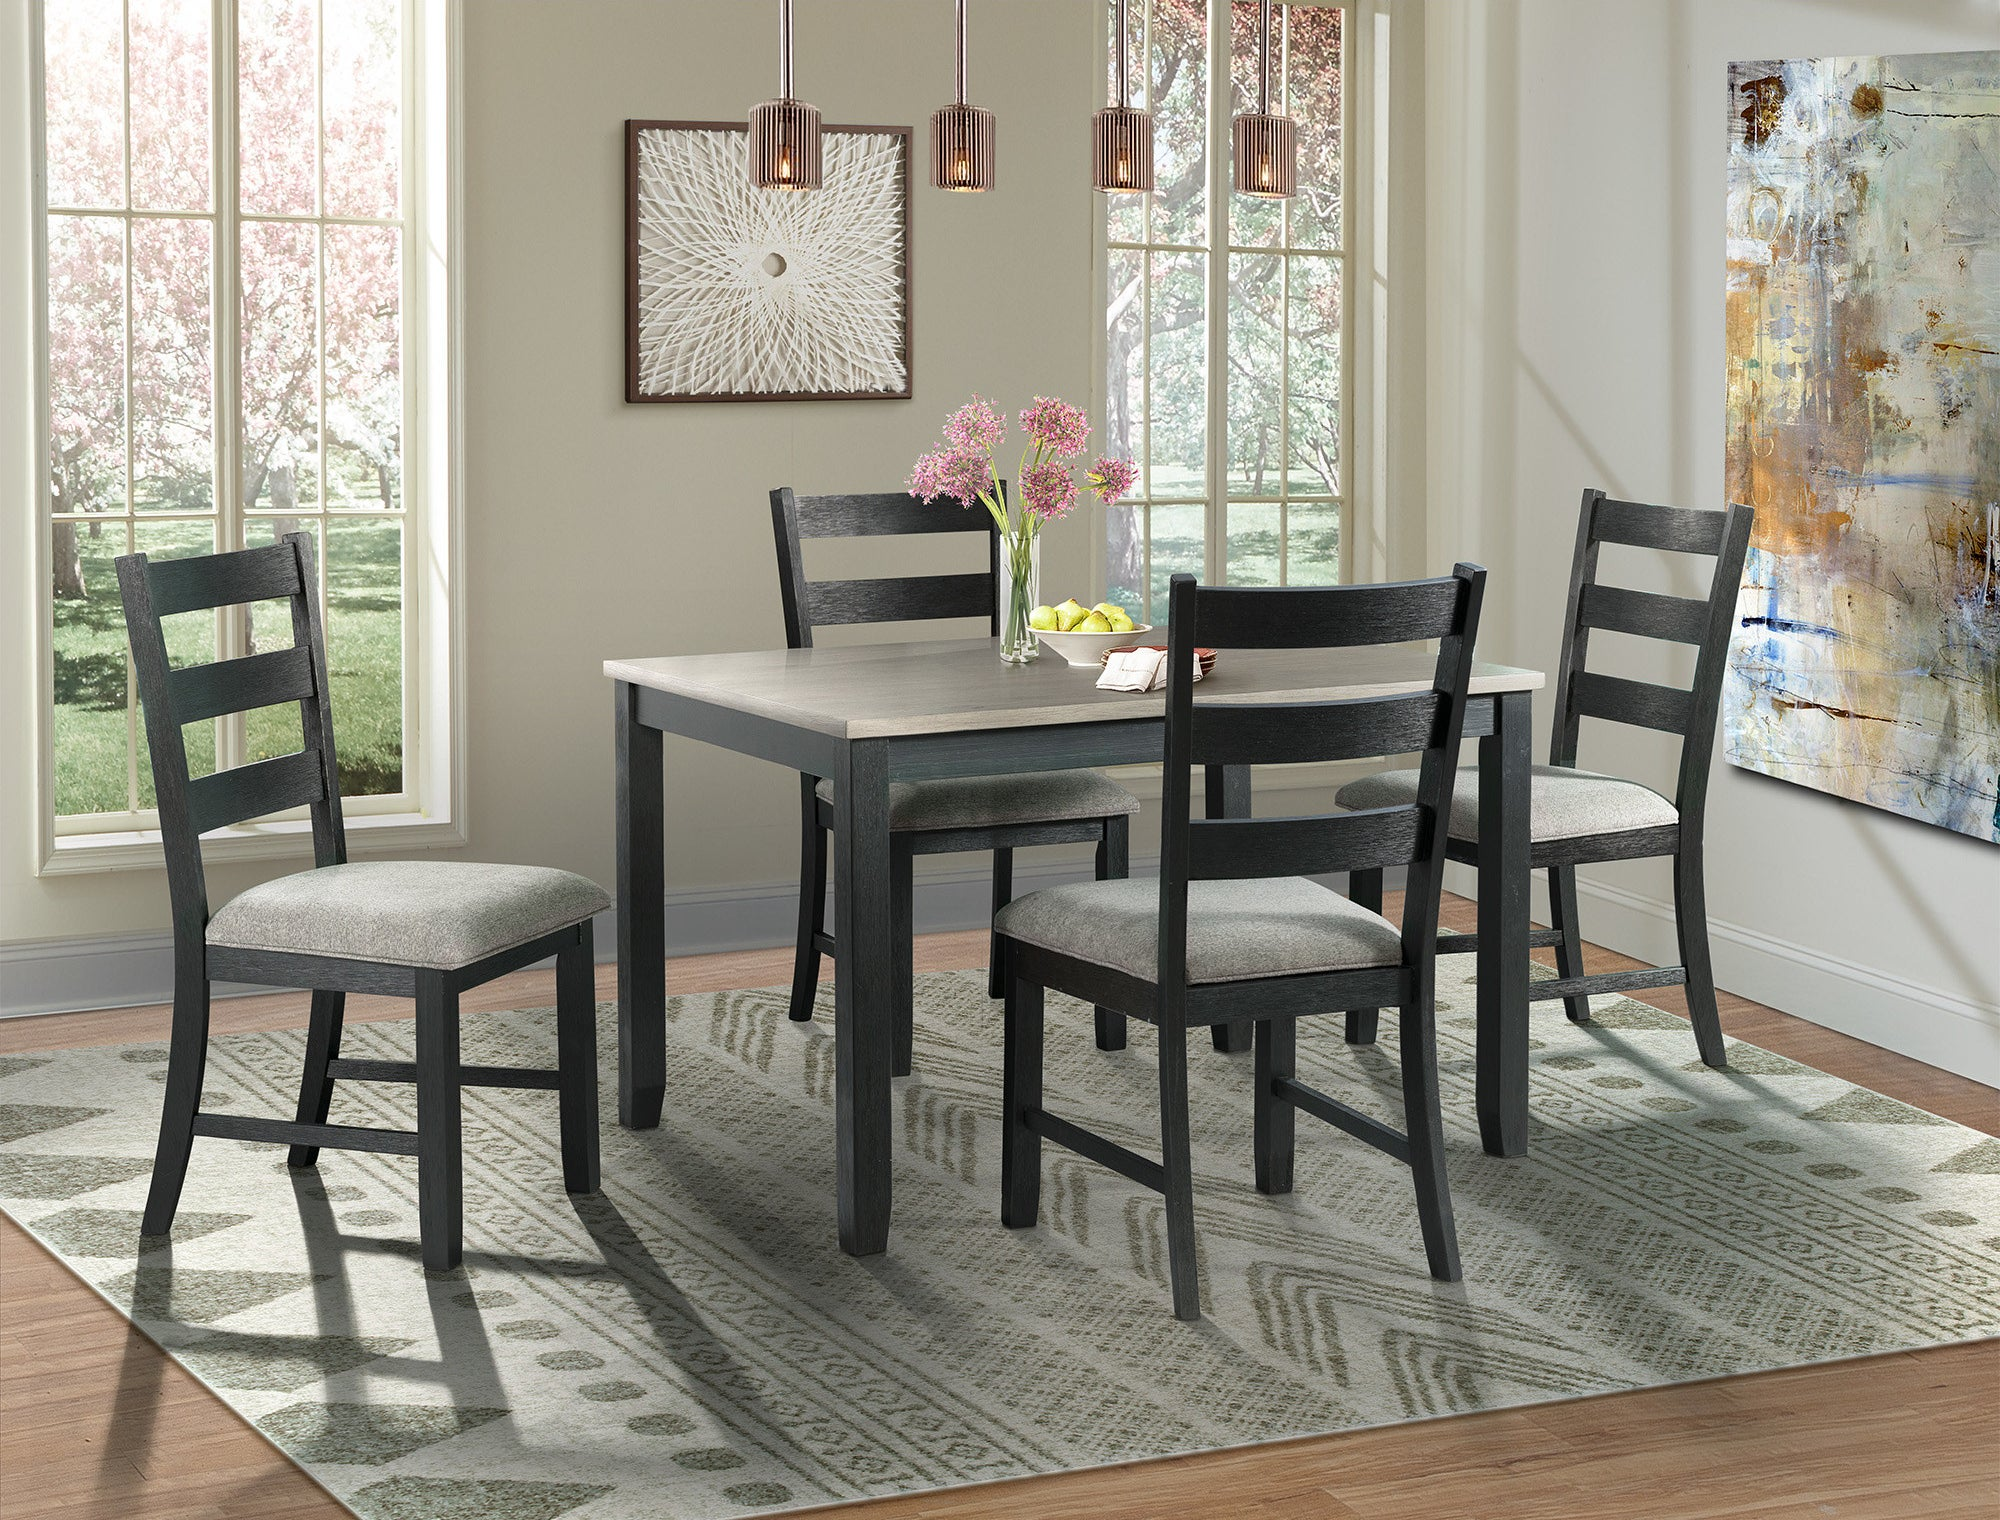 black dining set with padded chairs and a table